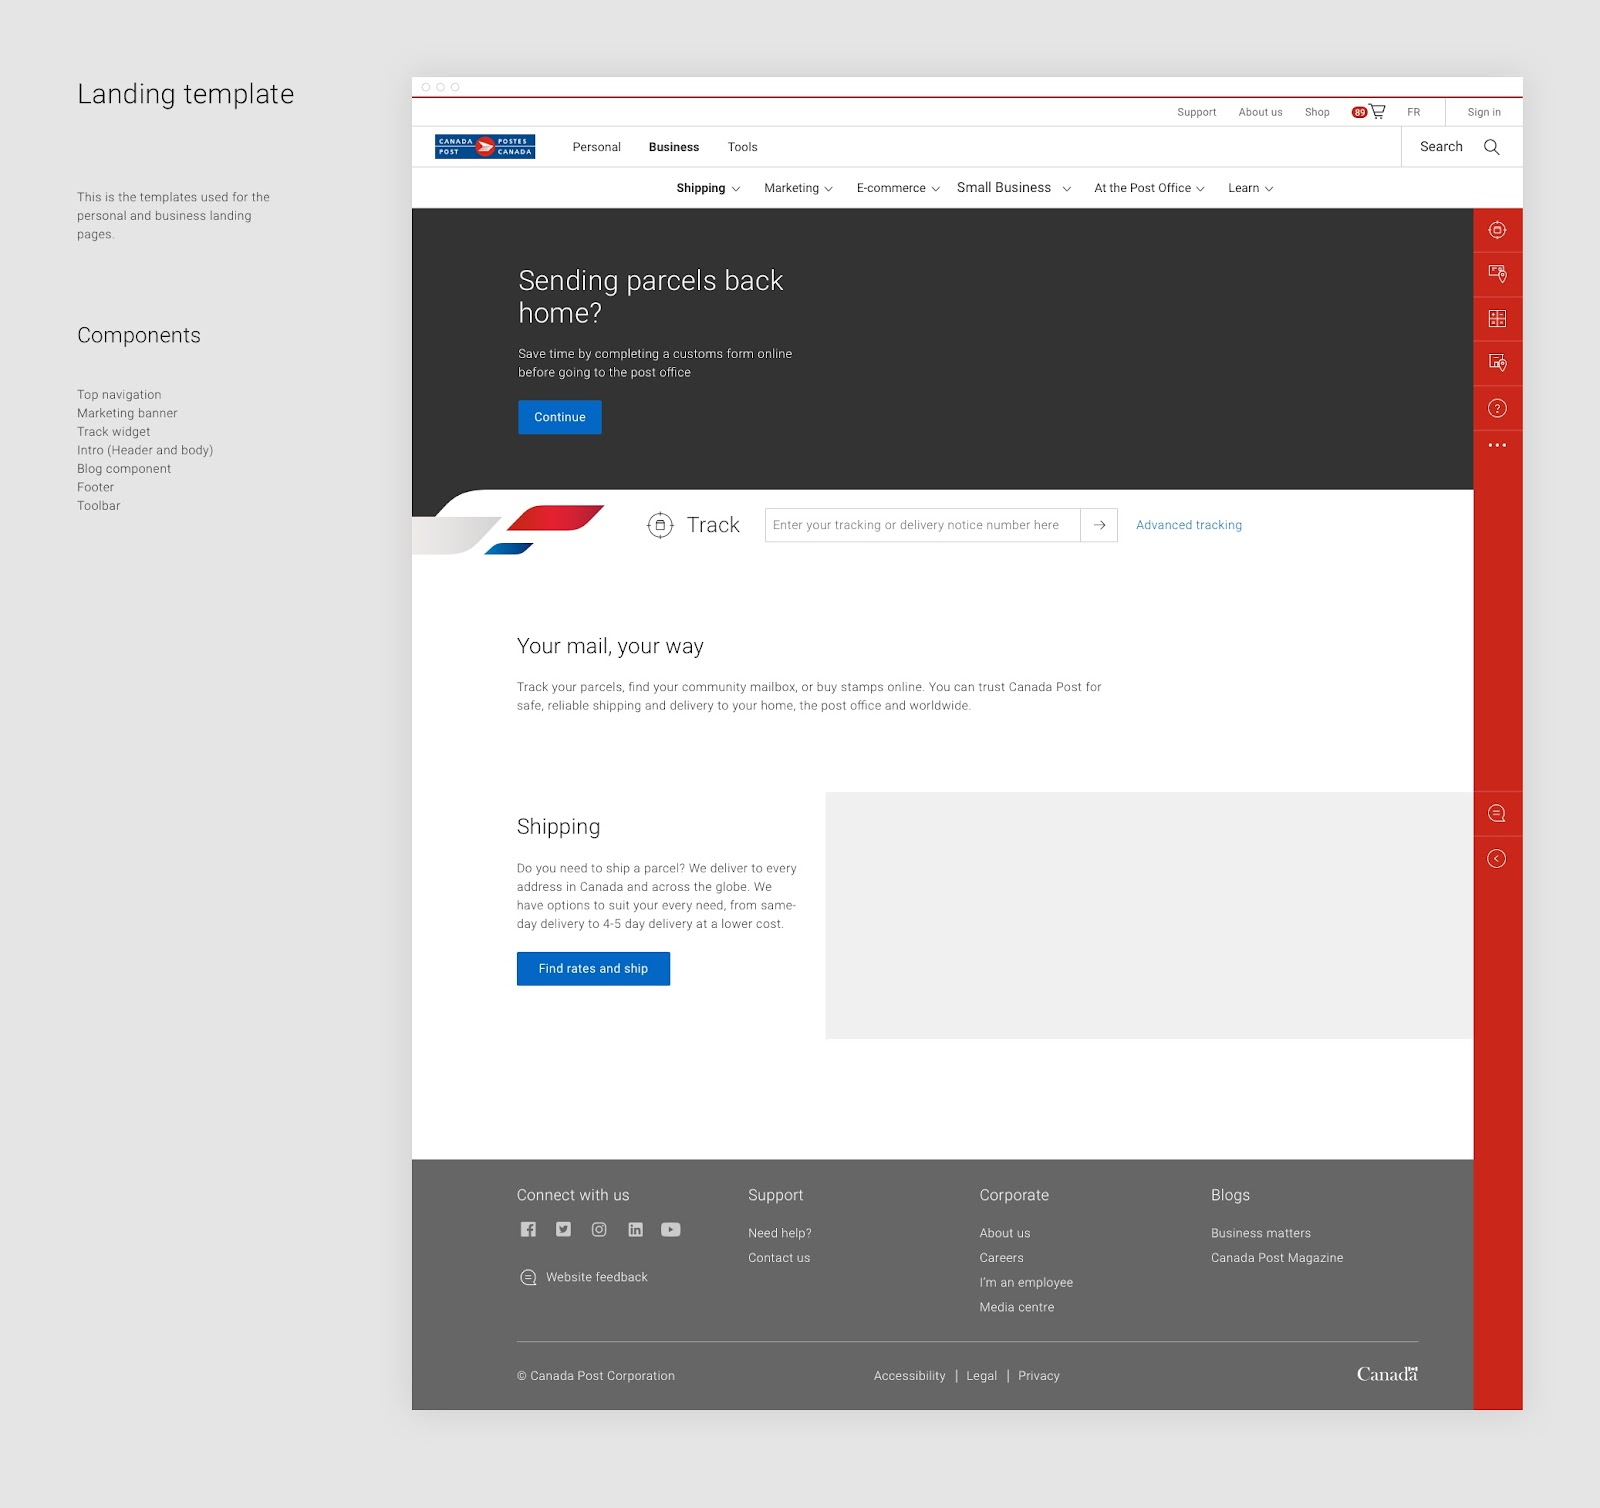 The Canada Post design kit includes templates and examples of the components that are used in each template. For example, this landing page template includes top navigation, a marketing banner, and a blog component among others.